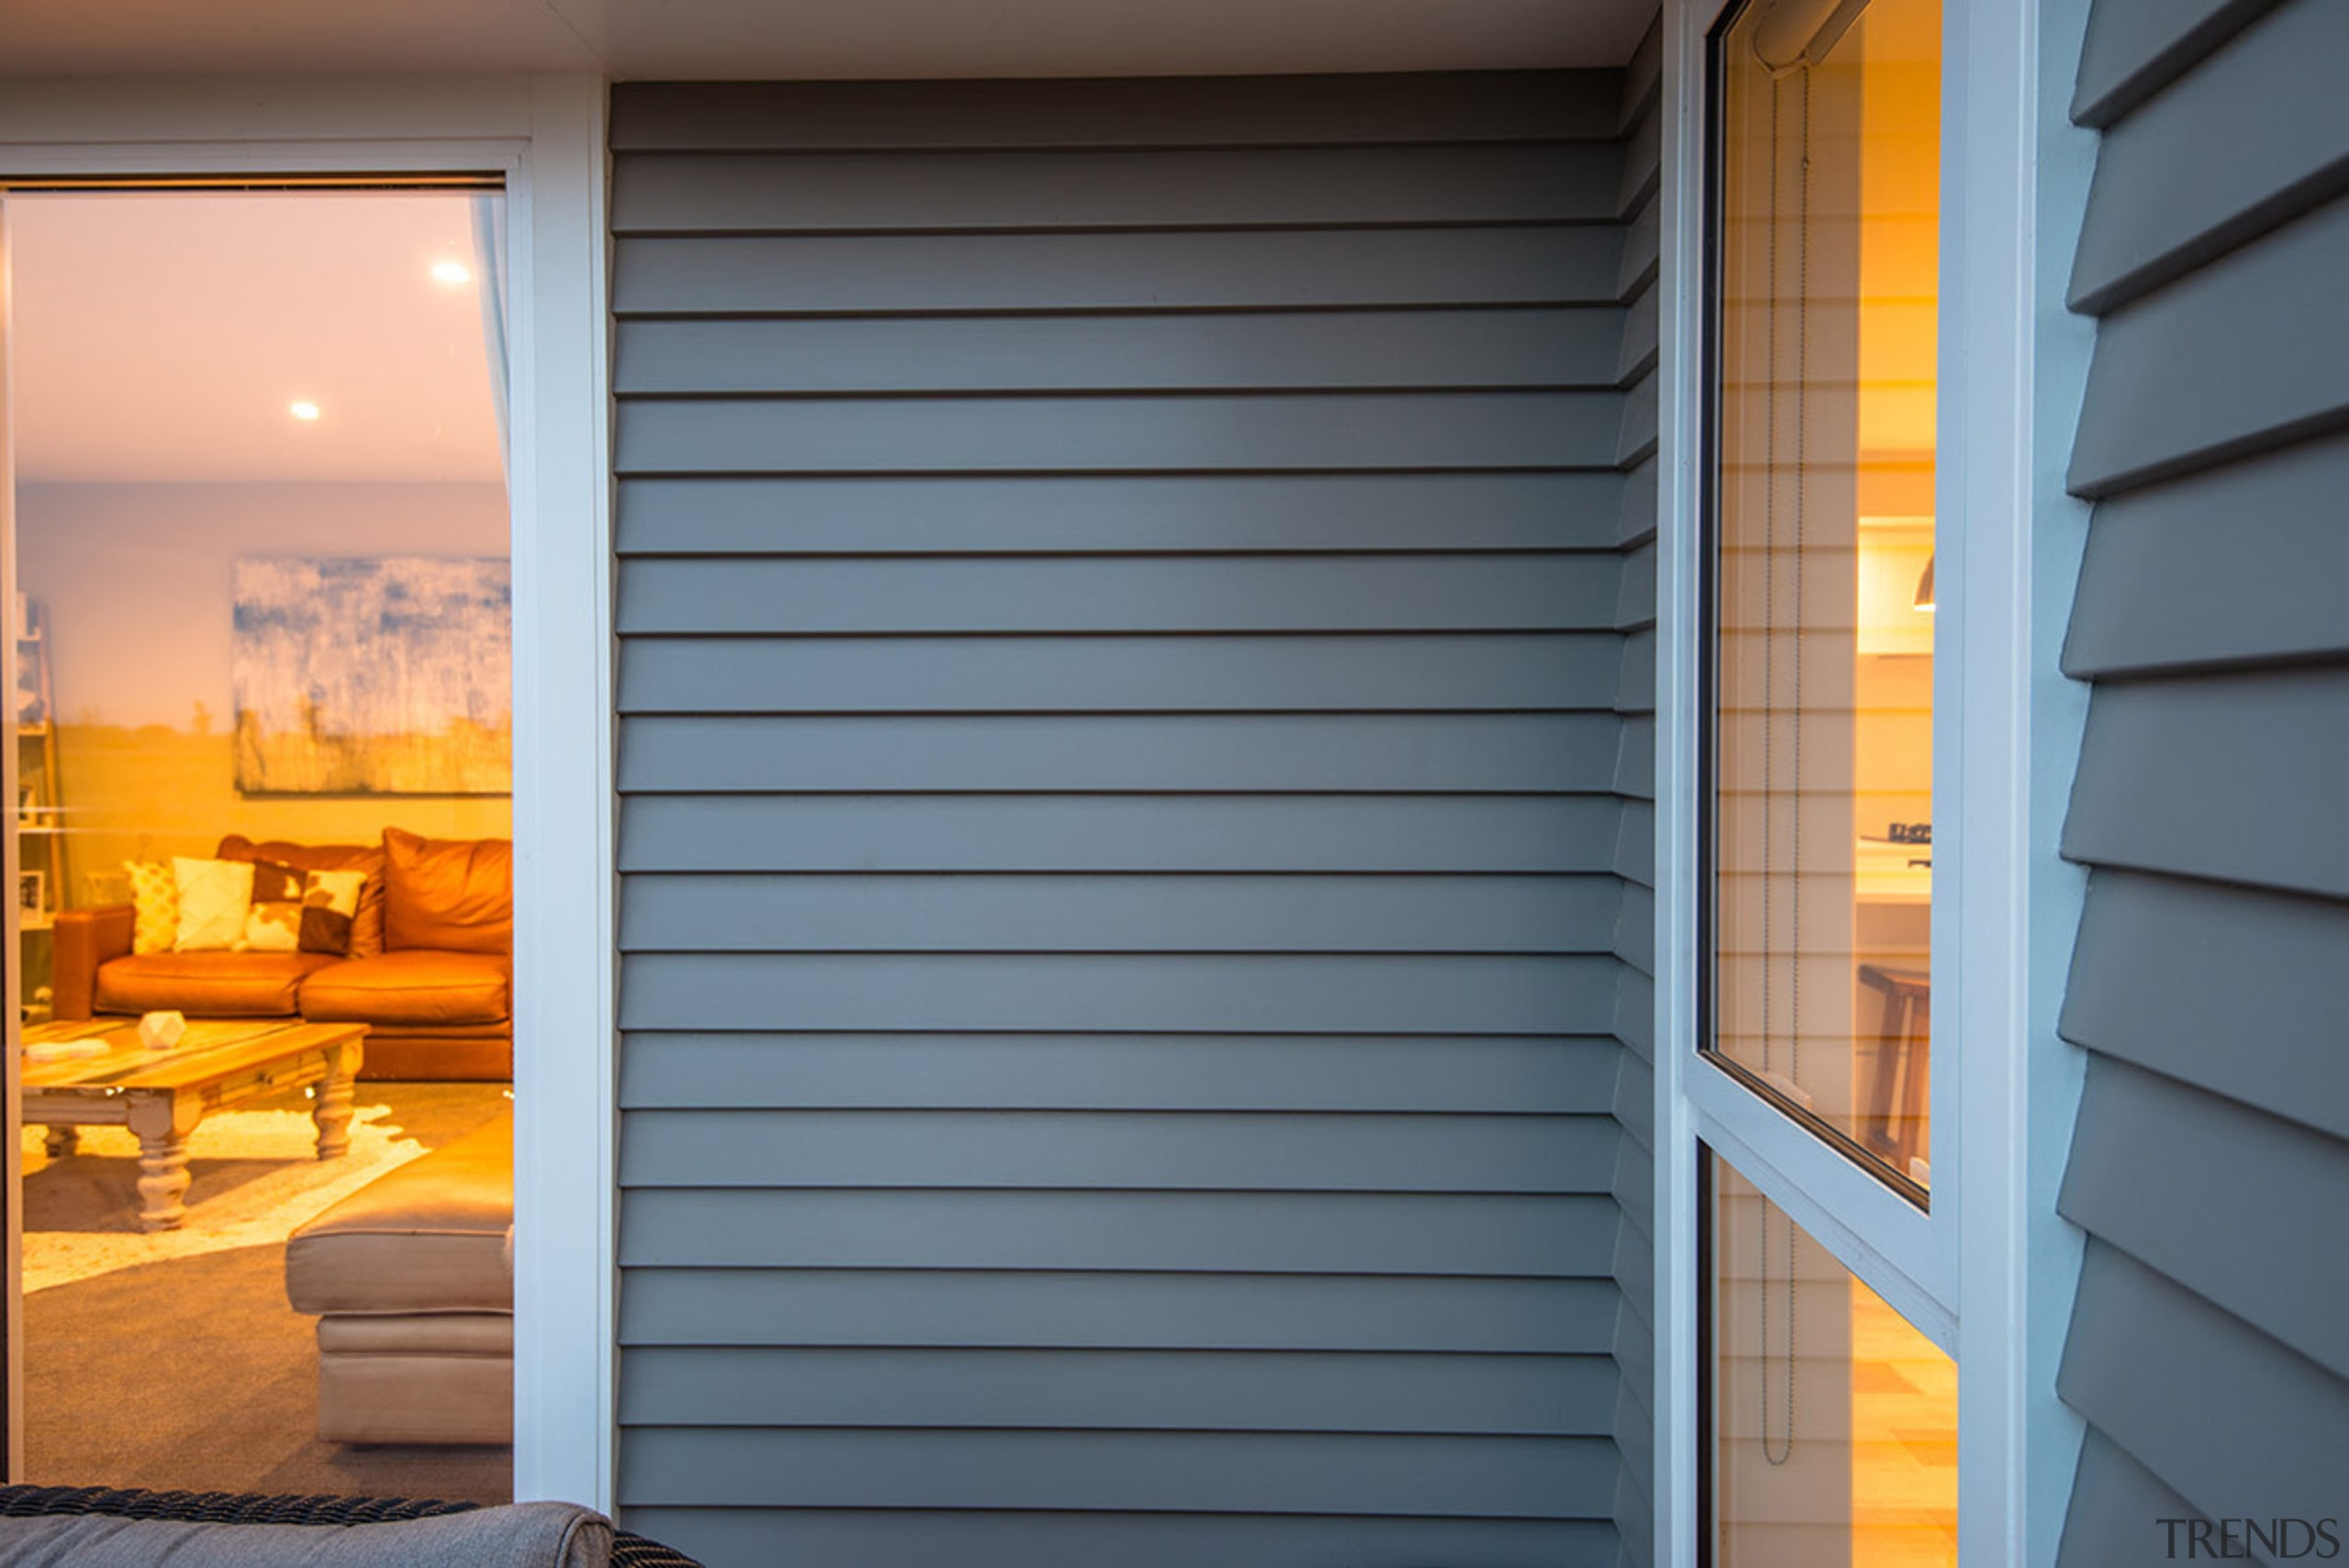 Envira's Weatherboard System will provide a great finish door, facade, home, house, interior design, real estate, shade, siding, window, window blind, window covering, window treatment, wood, yellow, gray